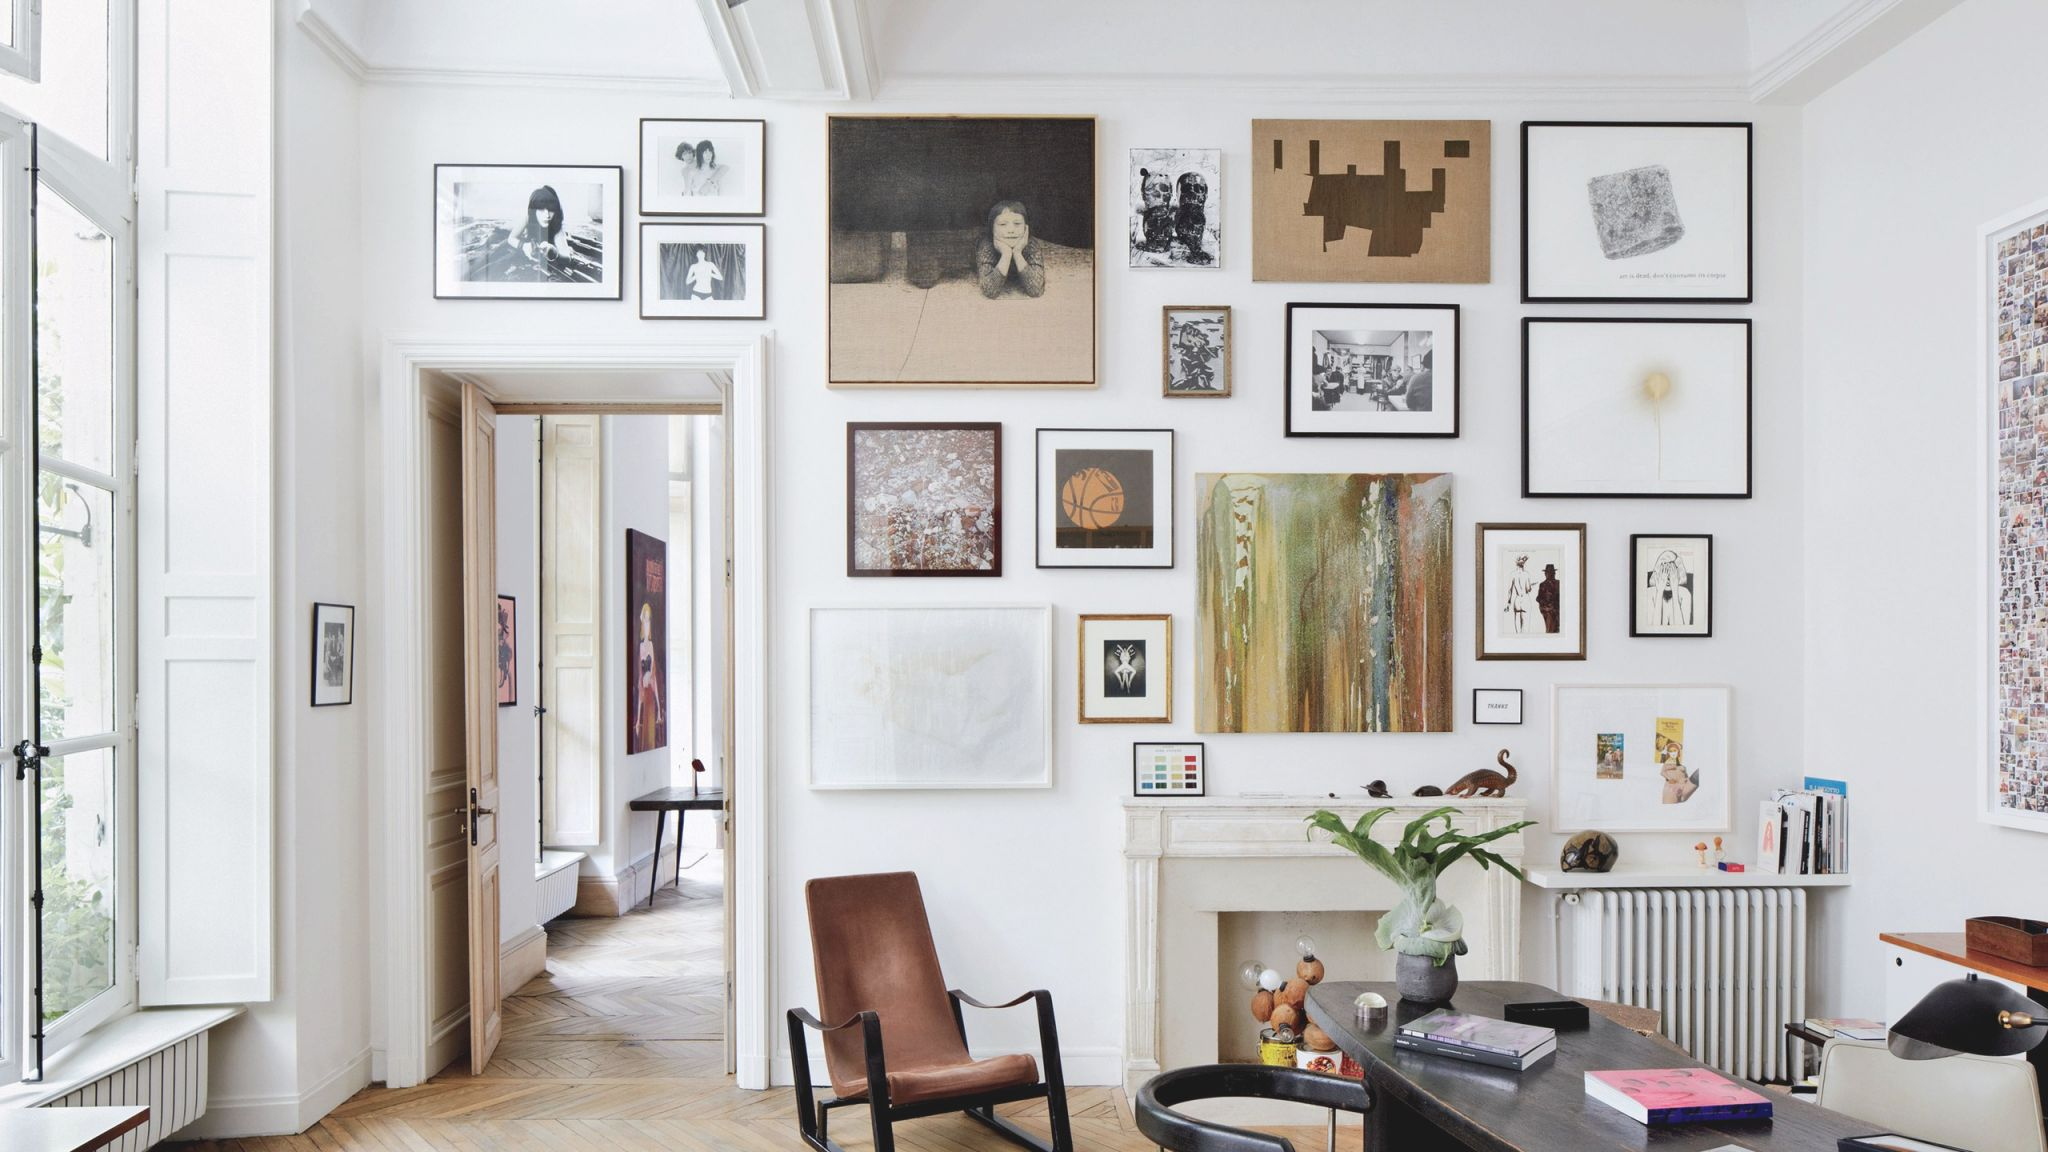 20 Wall Decor Ideas To Refresh Your Space   Architectural Digest regarding Best of Art Decor For Living Room